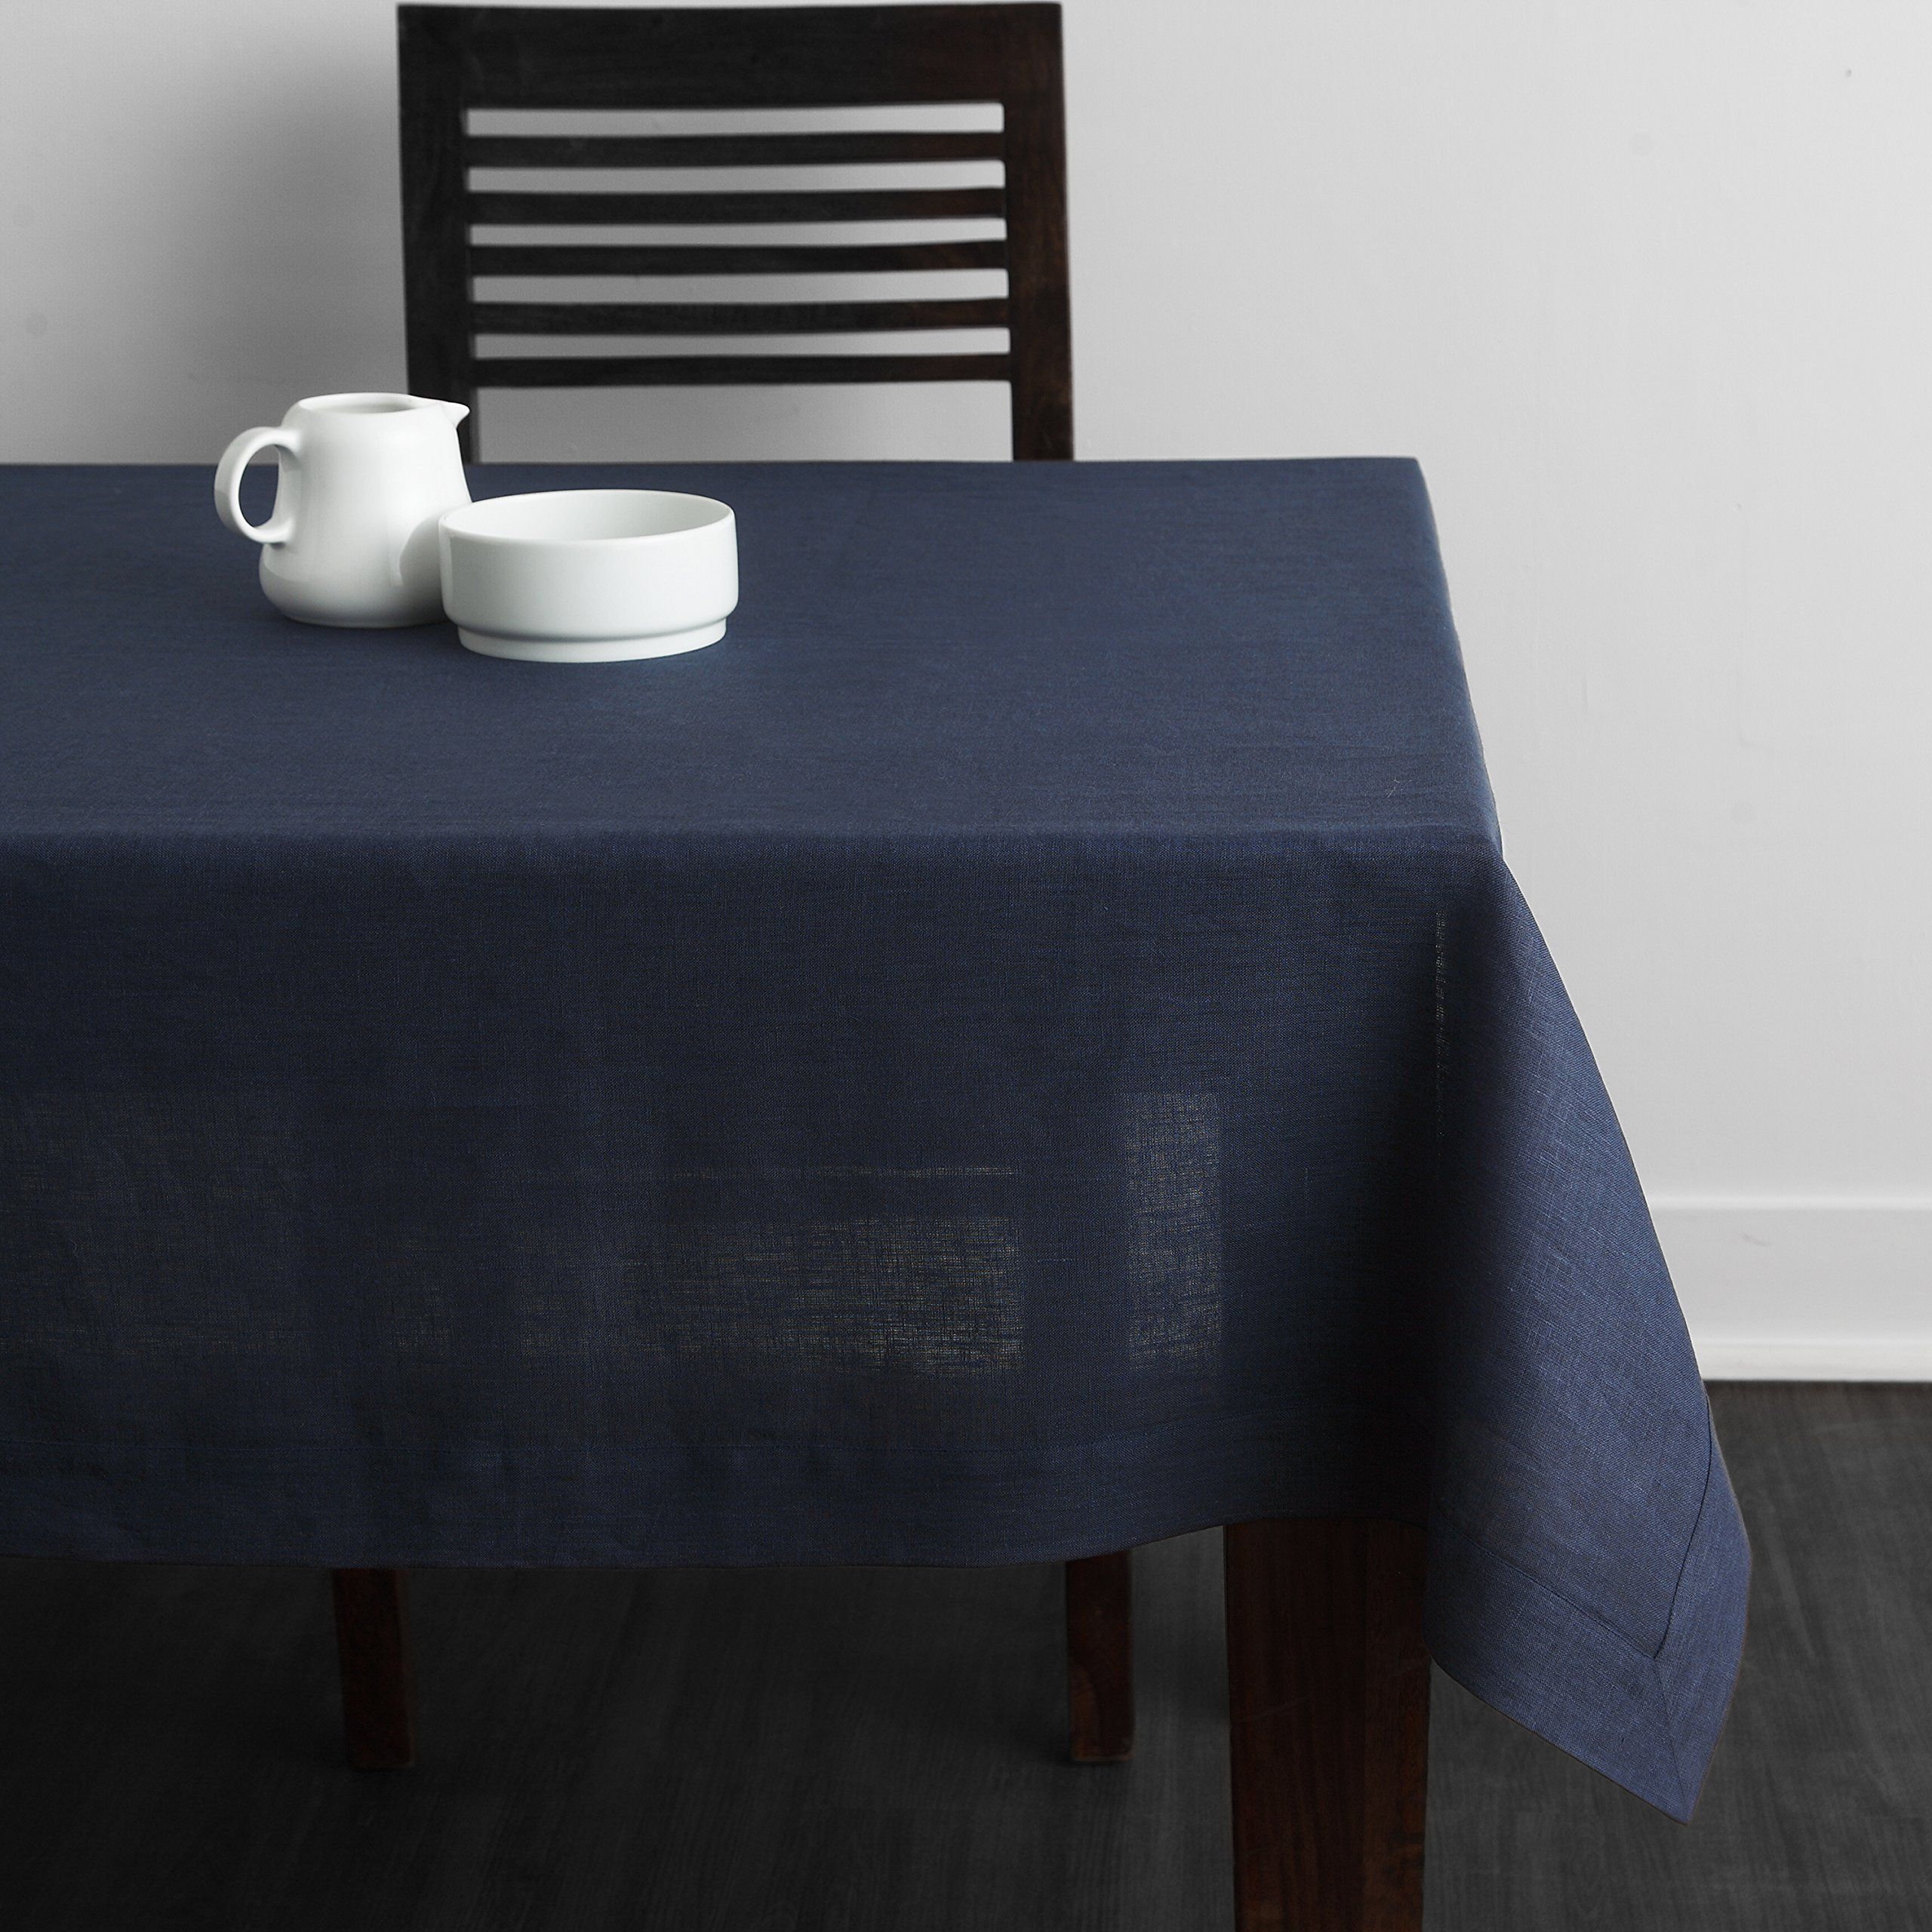 100% Pure Linen Plain Tablecloth Athena, Natural Rectangular Table Cloth  For Indoor And Outdoor